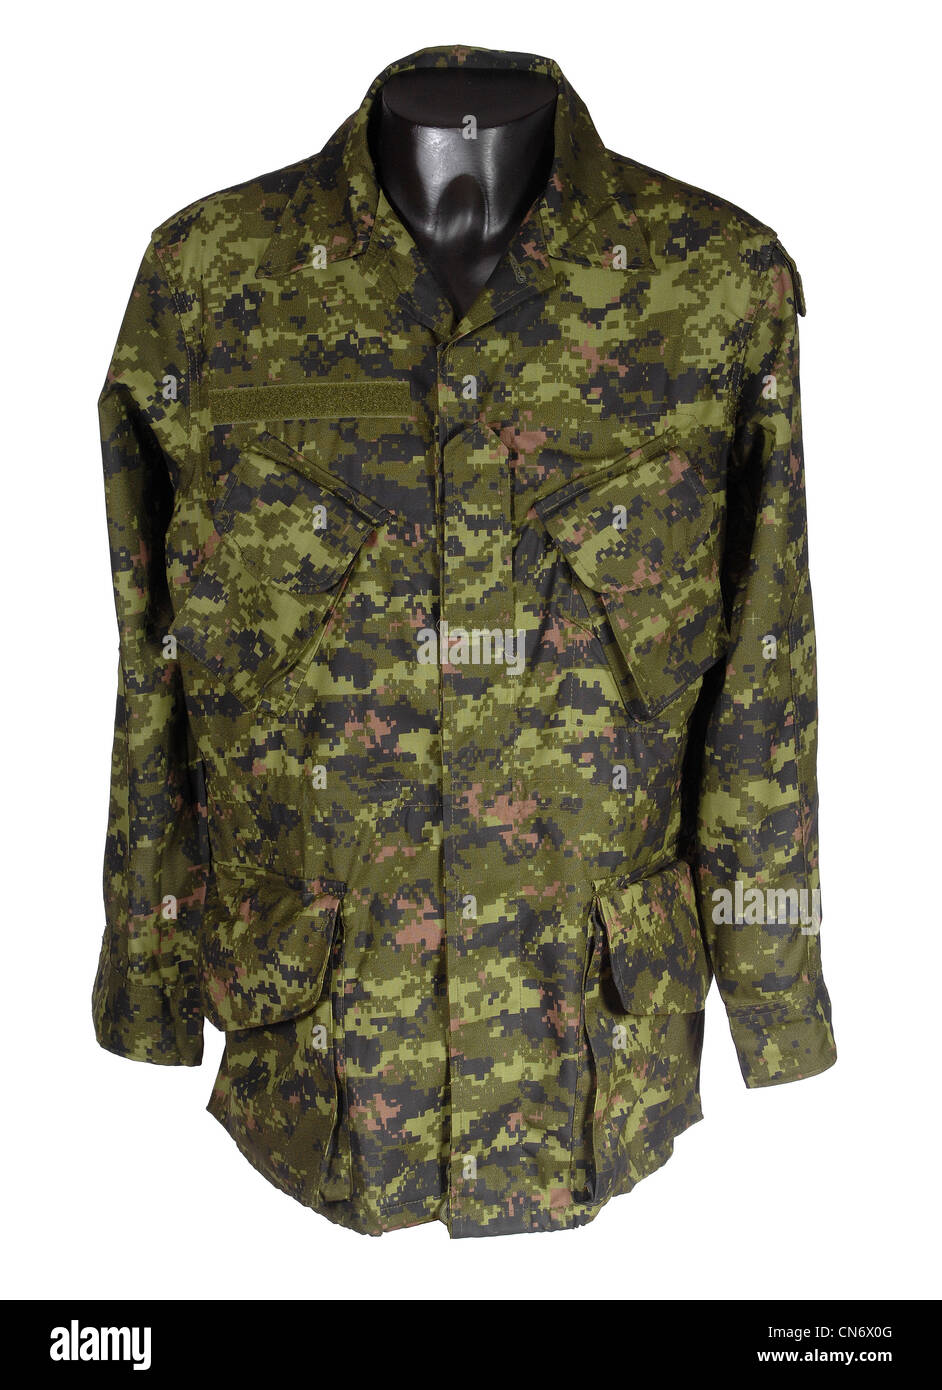 Camouflage Clothing As Used By Military Forces Canadian